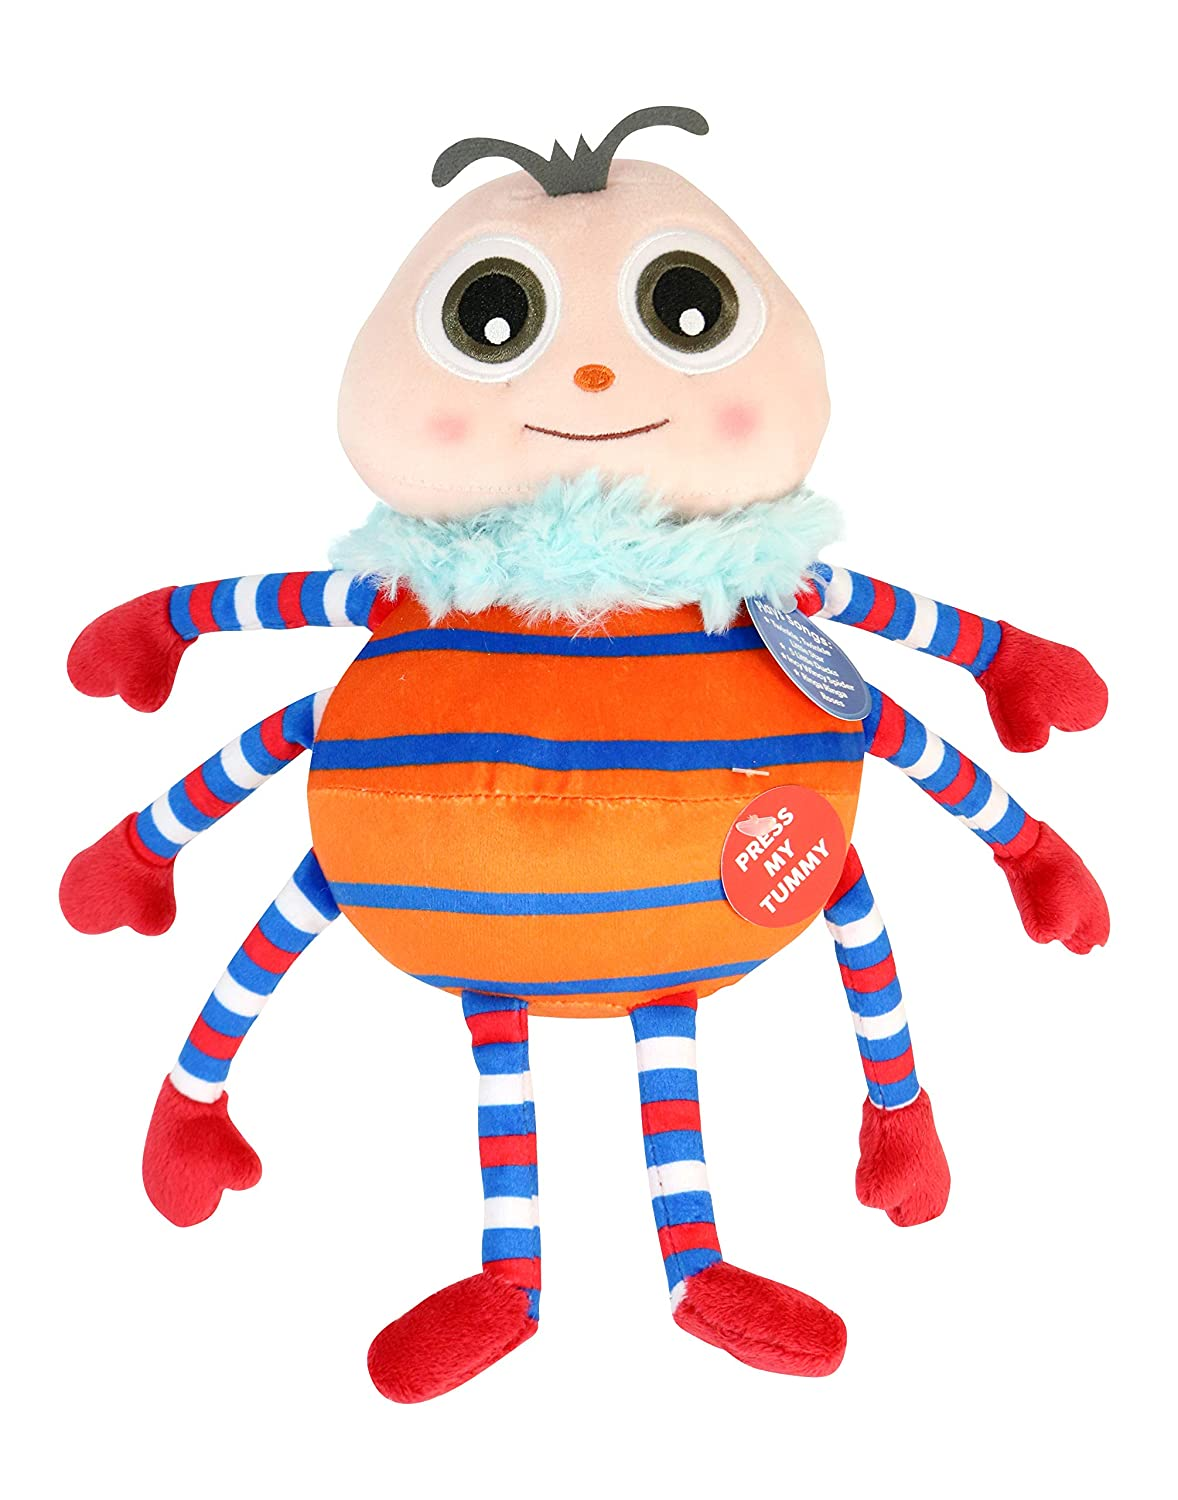 Little Baby Bum 11034 Spider Musical Singing Plush Multicolor